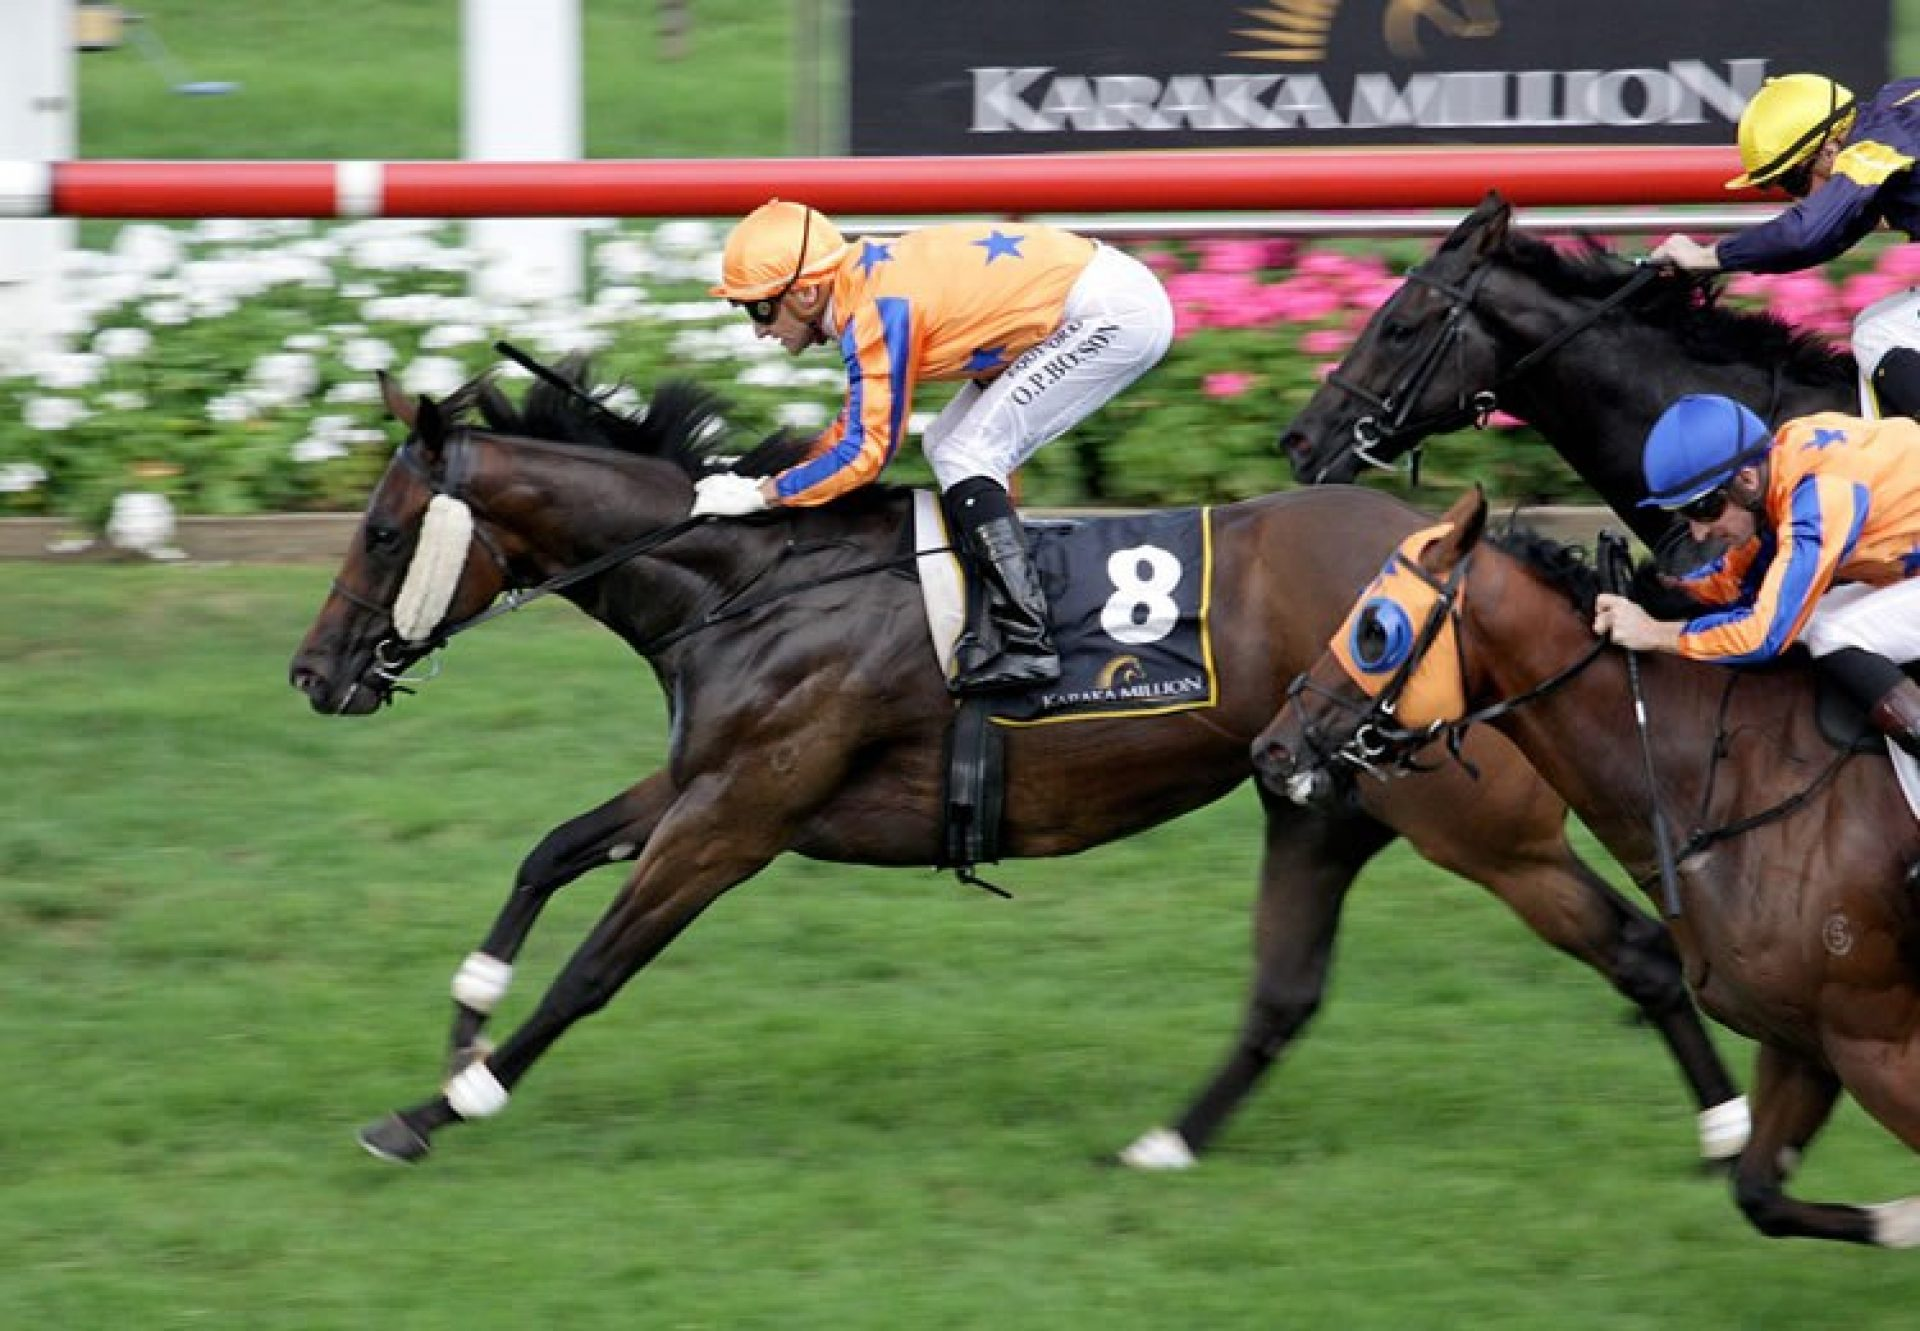 Avantage (Fastnet Rock) winning the Listed Karaka Million at Ellerslie